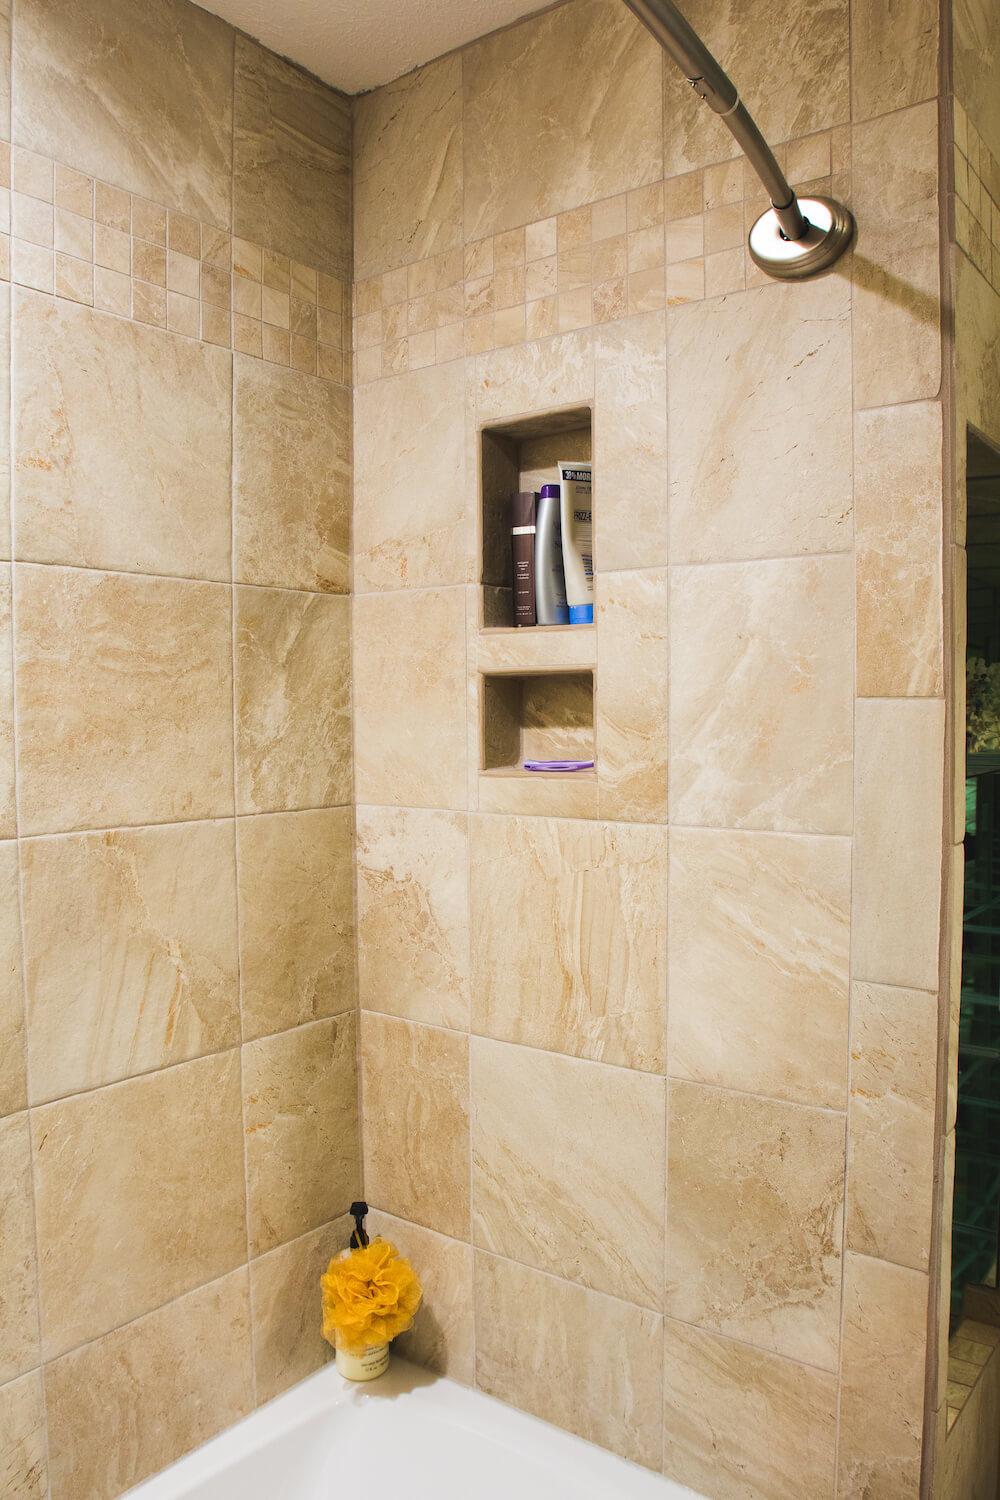 Delighted 12 Inch Floor Tiles Tall 12 X 12 Ceramic Tile Regular 12X12 Ceiling Tile Replacement 12X12 Ceiling Tiles Asbestos Old 12X24 Ceiling Tile Orange12X24 Floor Tile Designs 2018 Cost To Tile A Shower | How Much To Tile A Shower